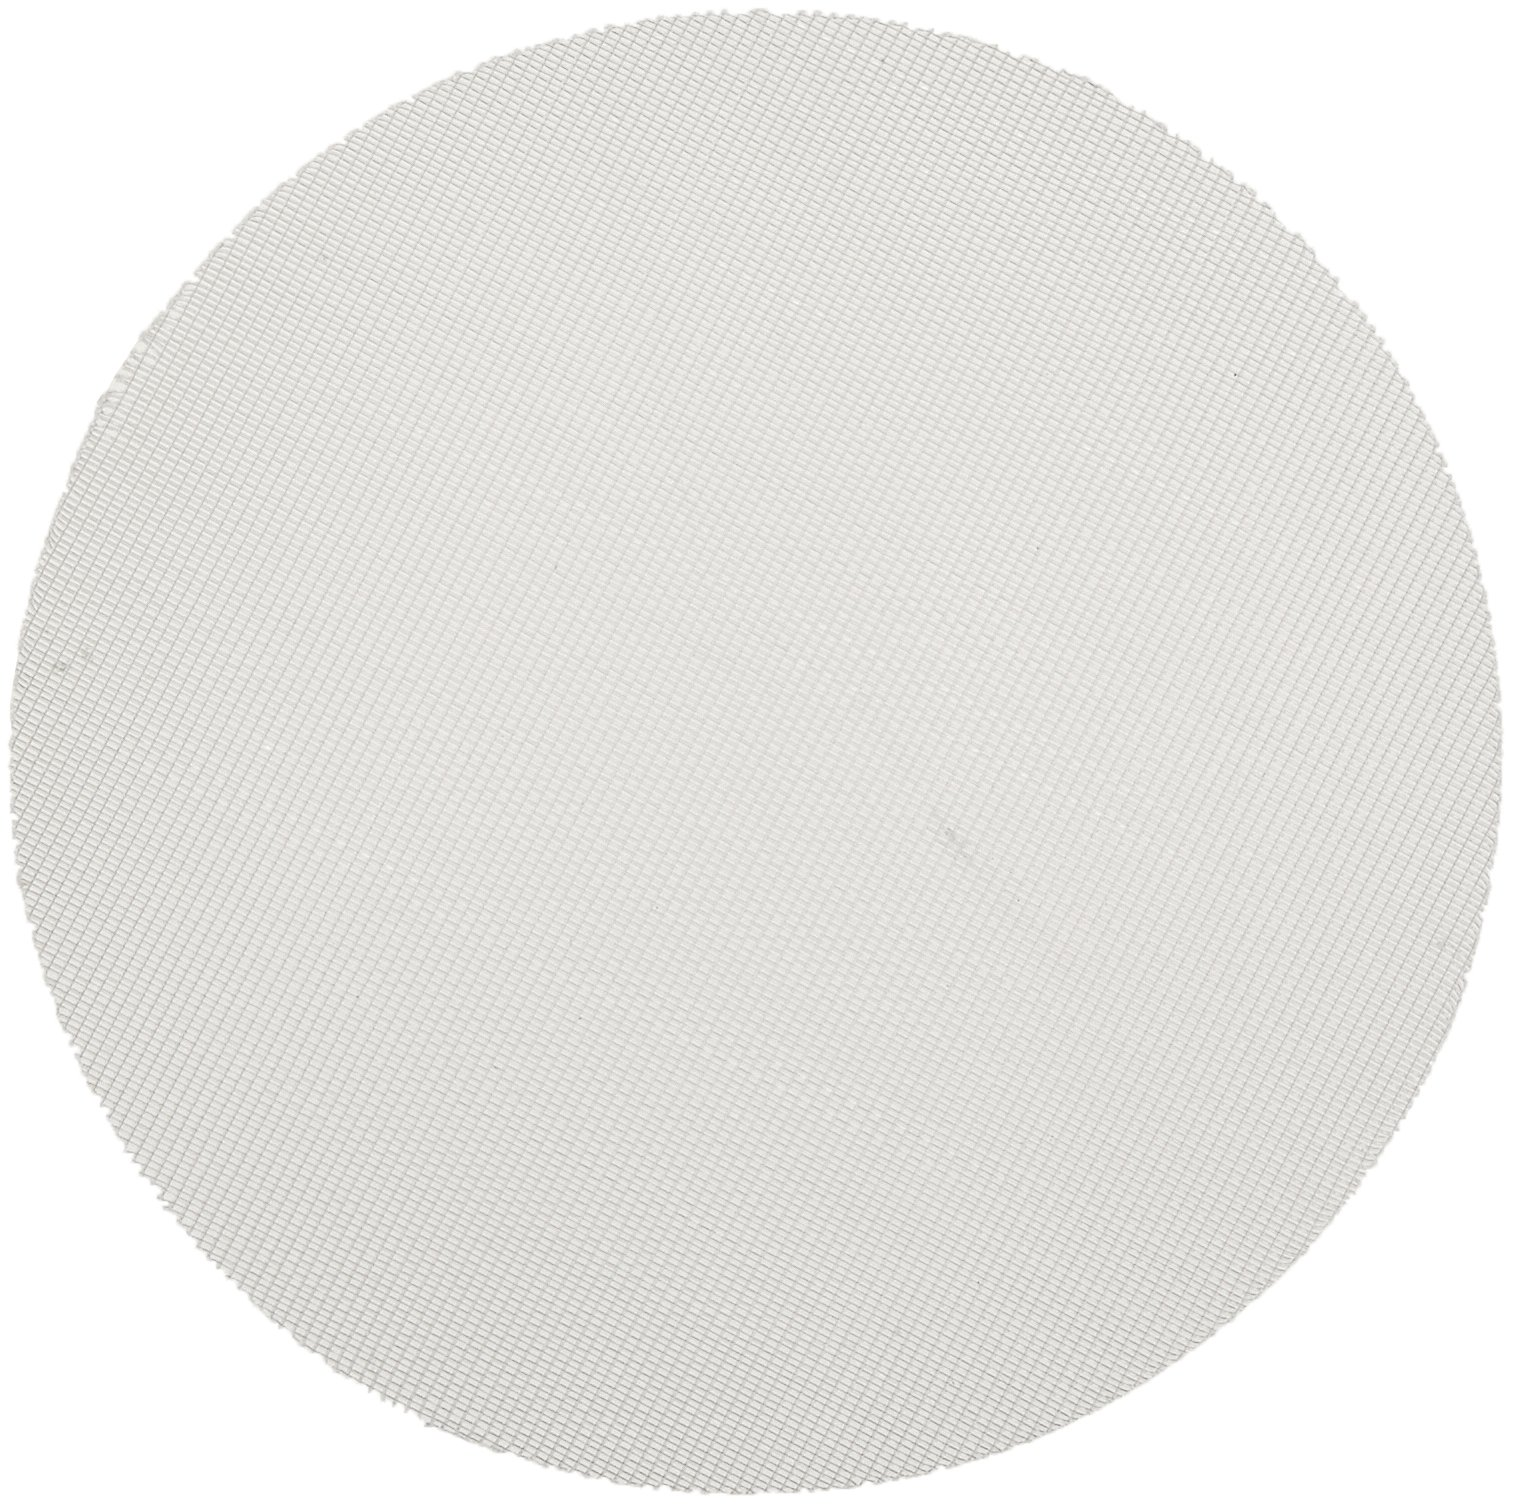 Dynalon Kartell 242845-110 High Density Polyethylene Mesh Filtering Discs for Buchner Funnel, 110mm Diameter (Case of 50)